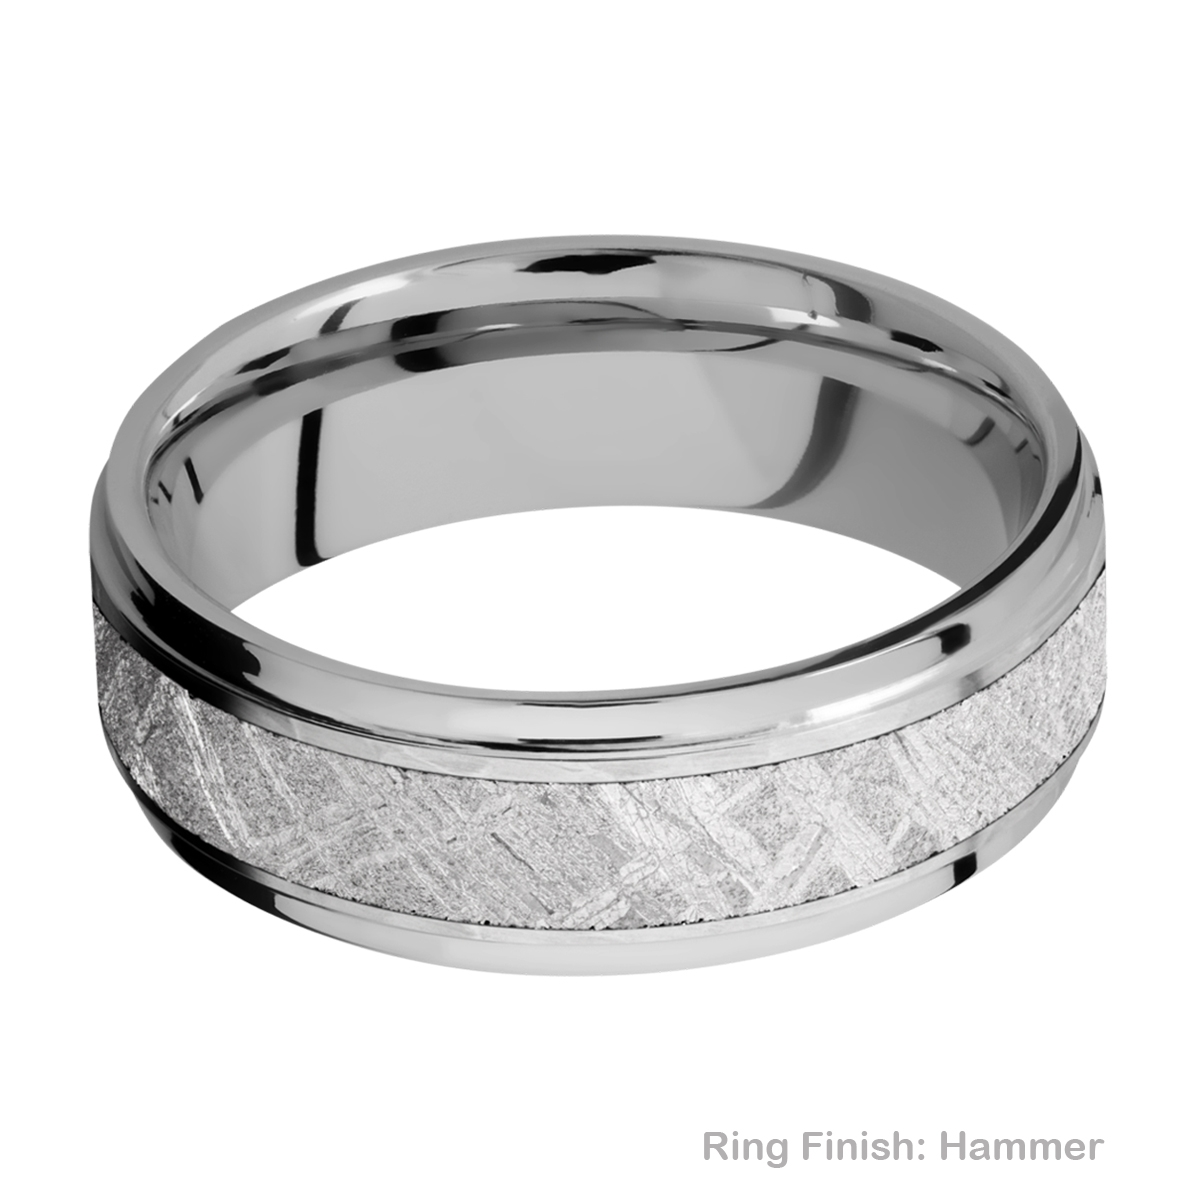 Lashbrook 7FGE14/METEORITE Titanium Wedding Ring or Band Alternative View 8